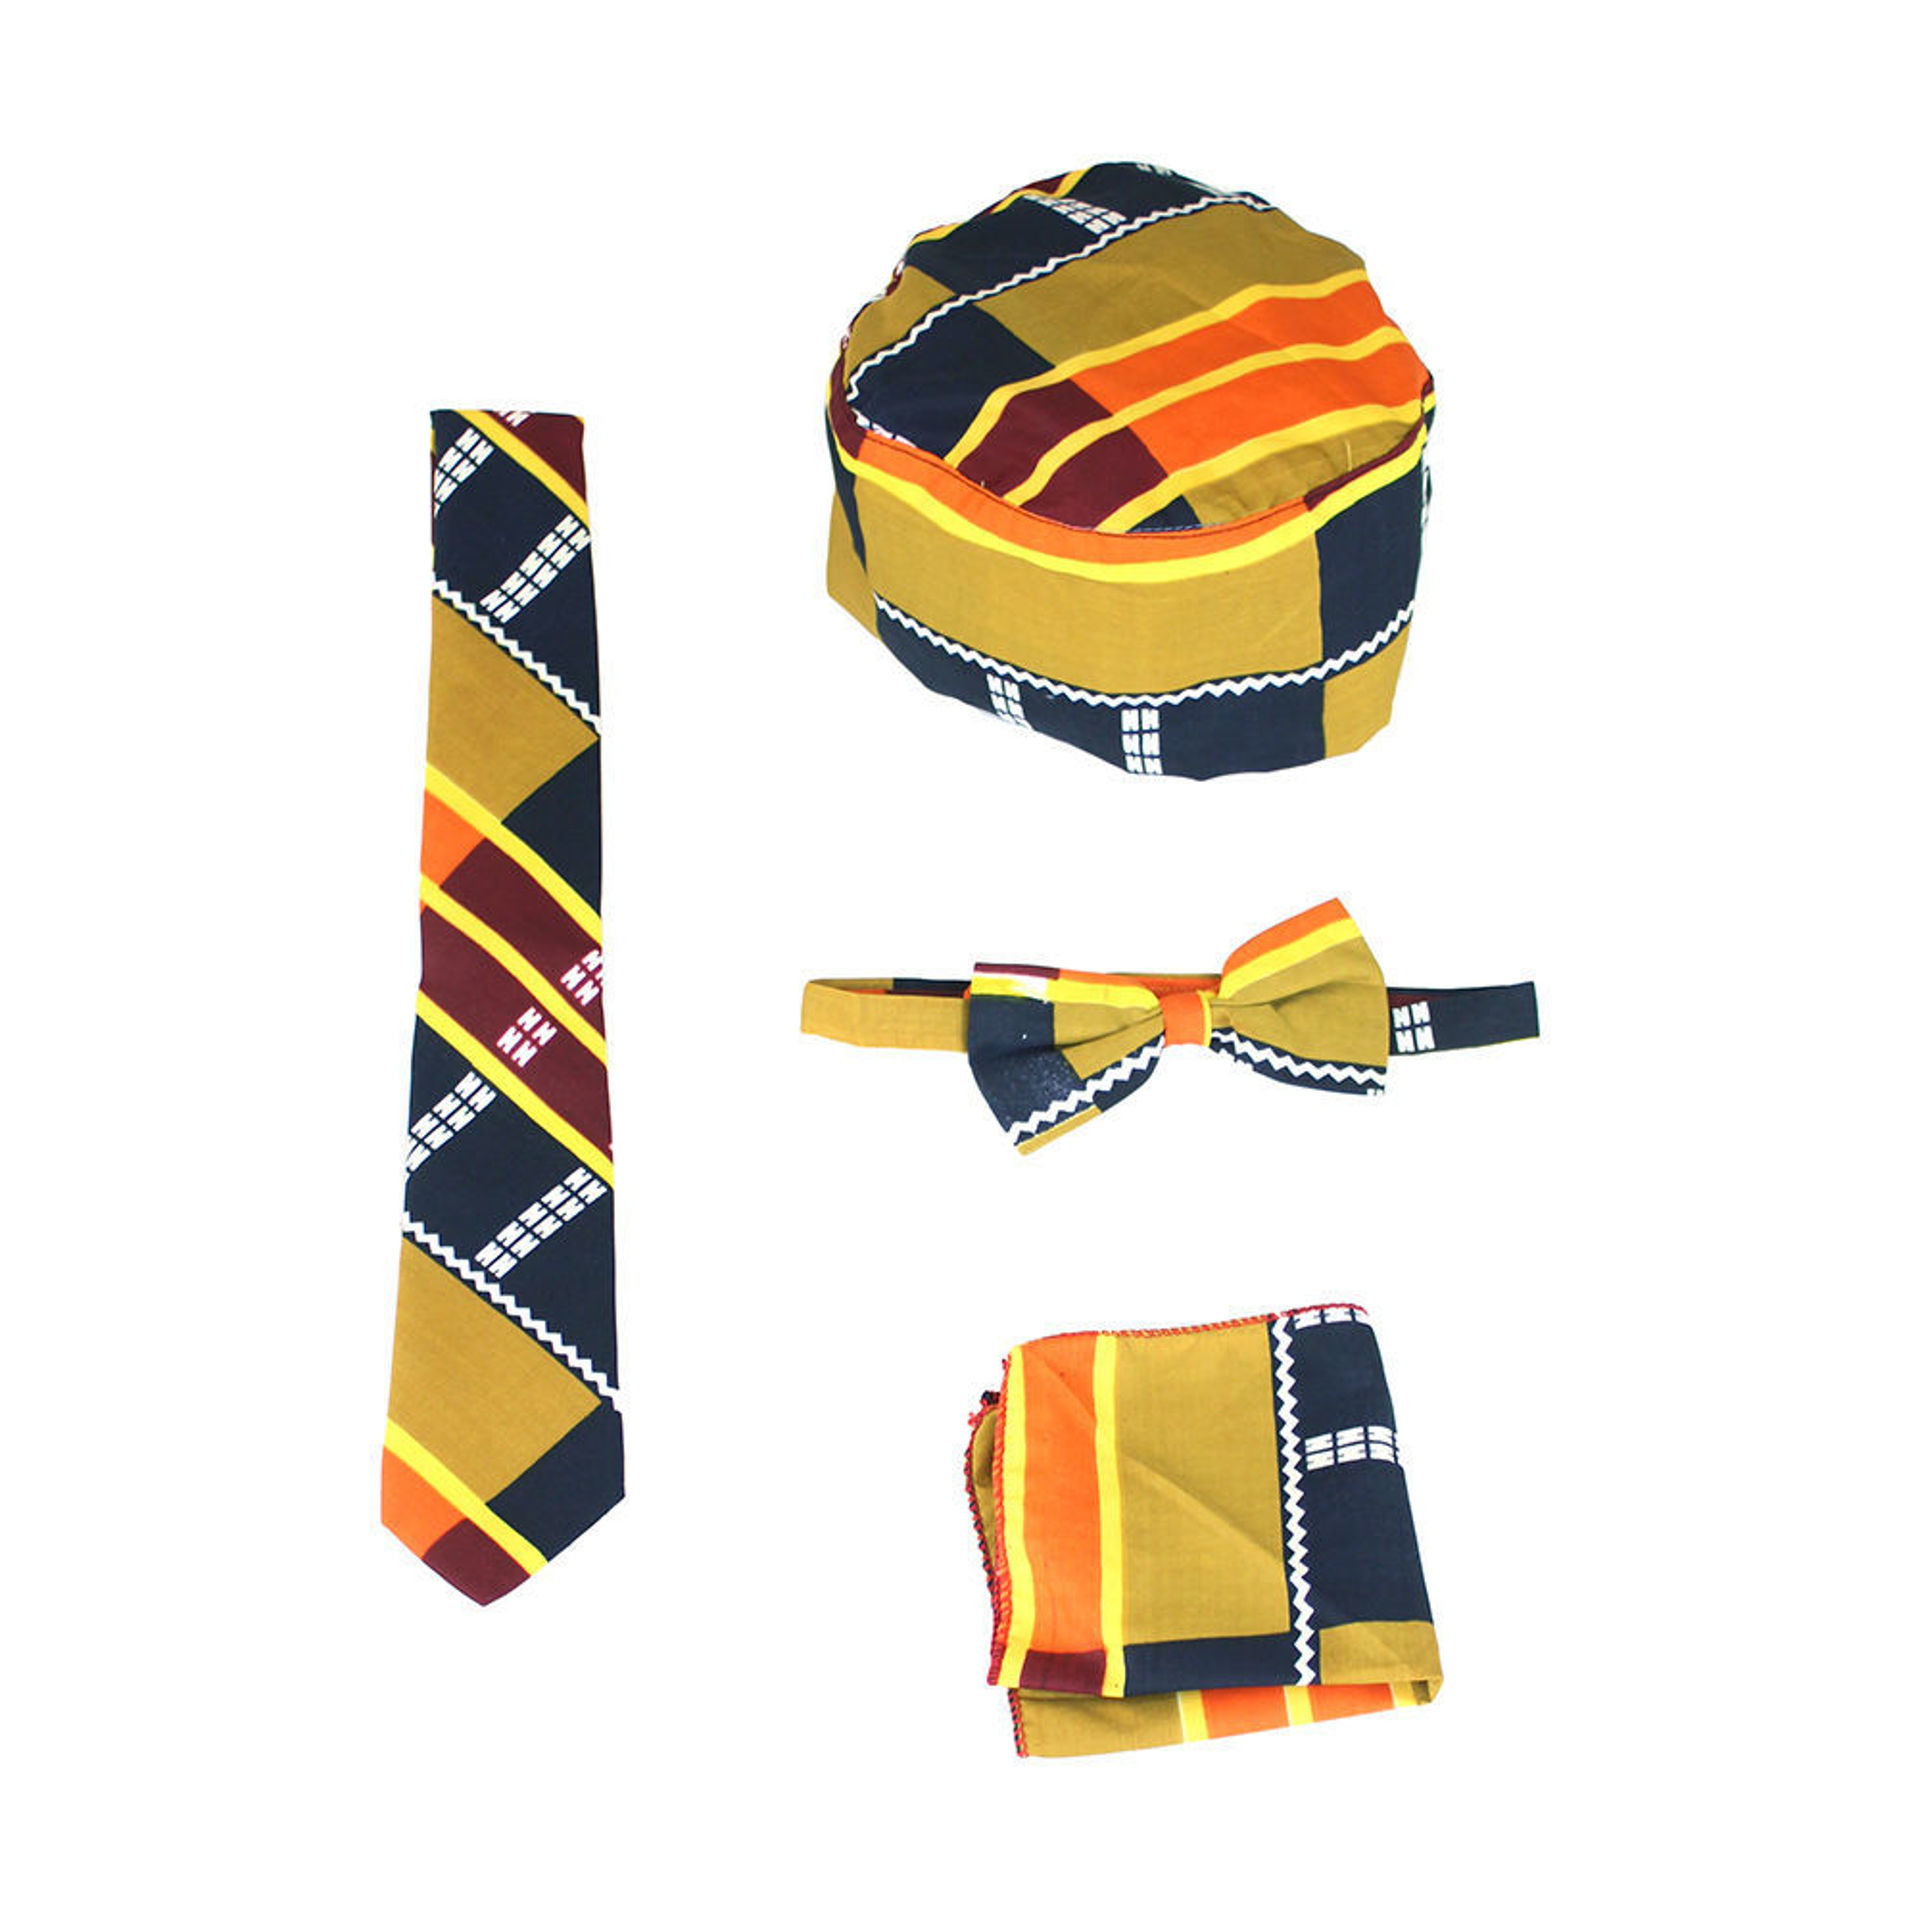 Picture of Mustard Kente #3 Accessory Set